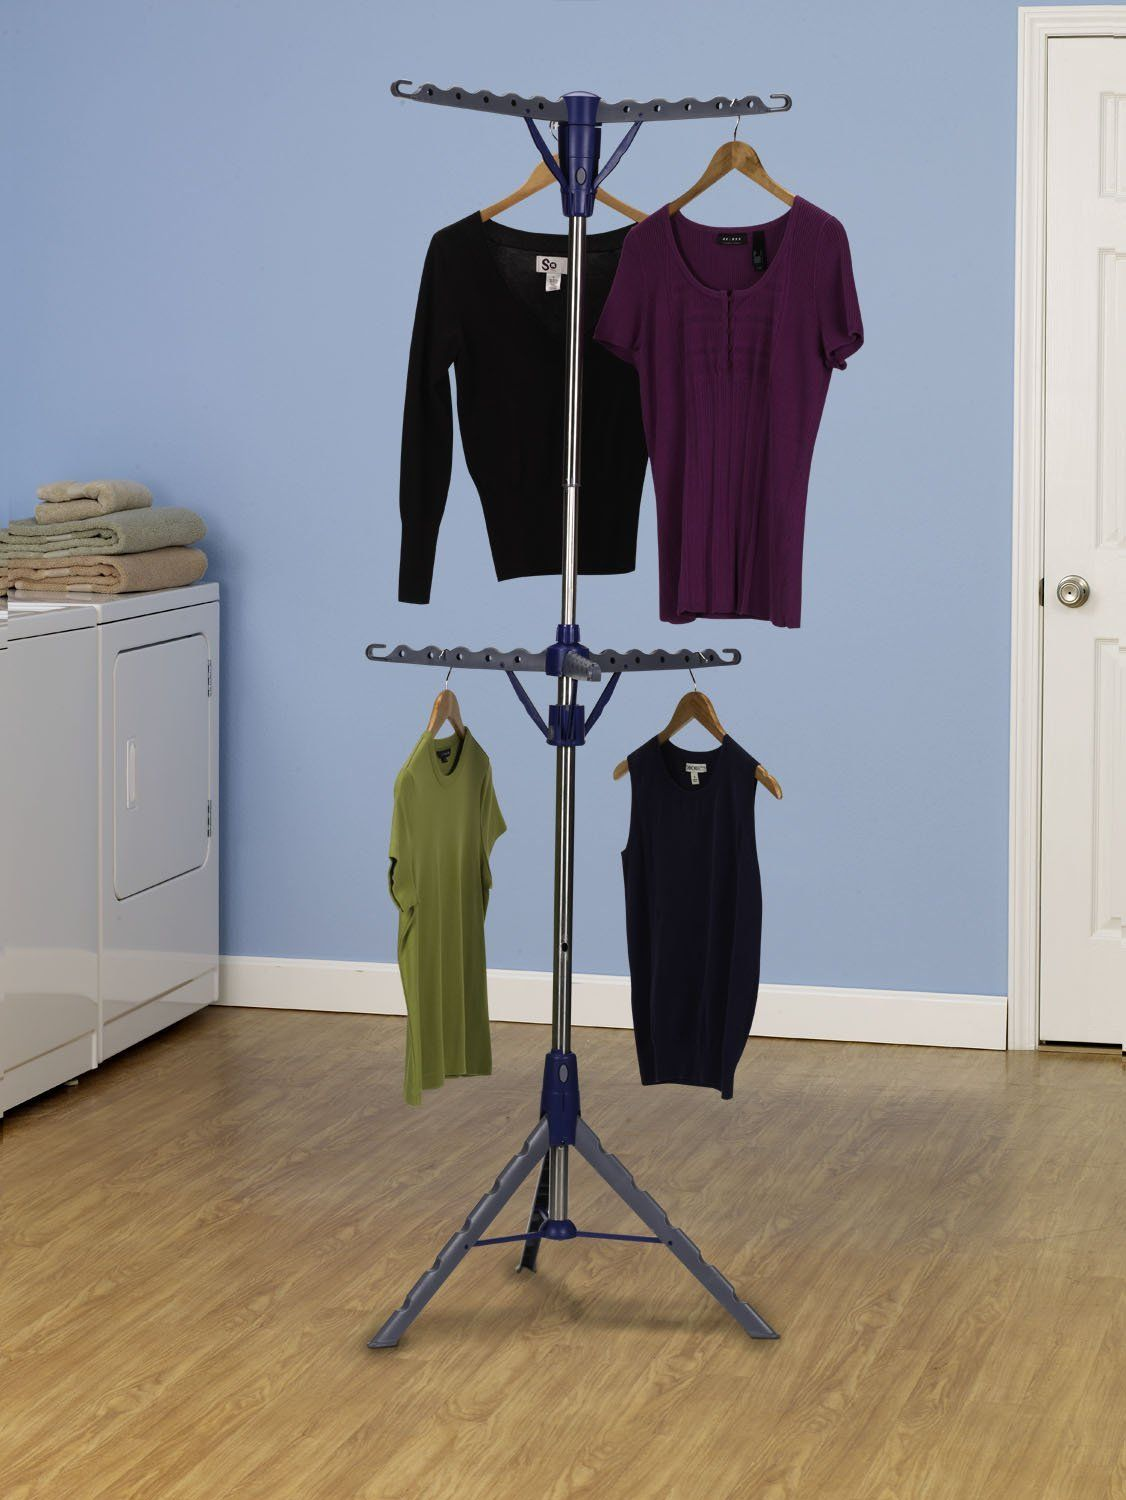 Amazon.com - Household Essentials 2-Tier Tripod Air Dryer - Clothes Drying Racks